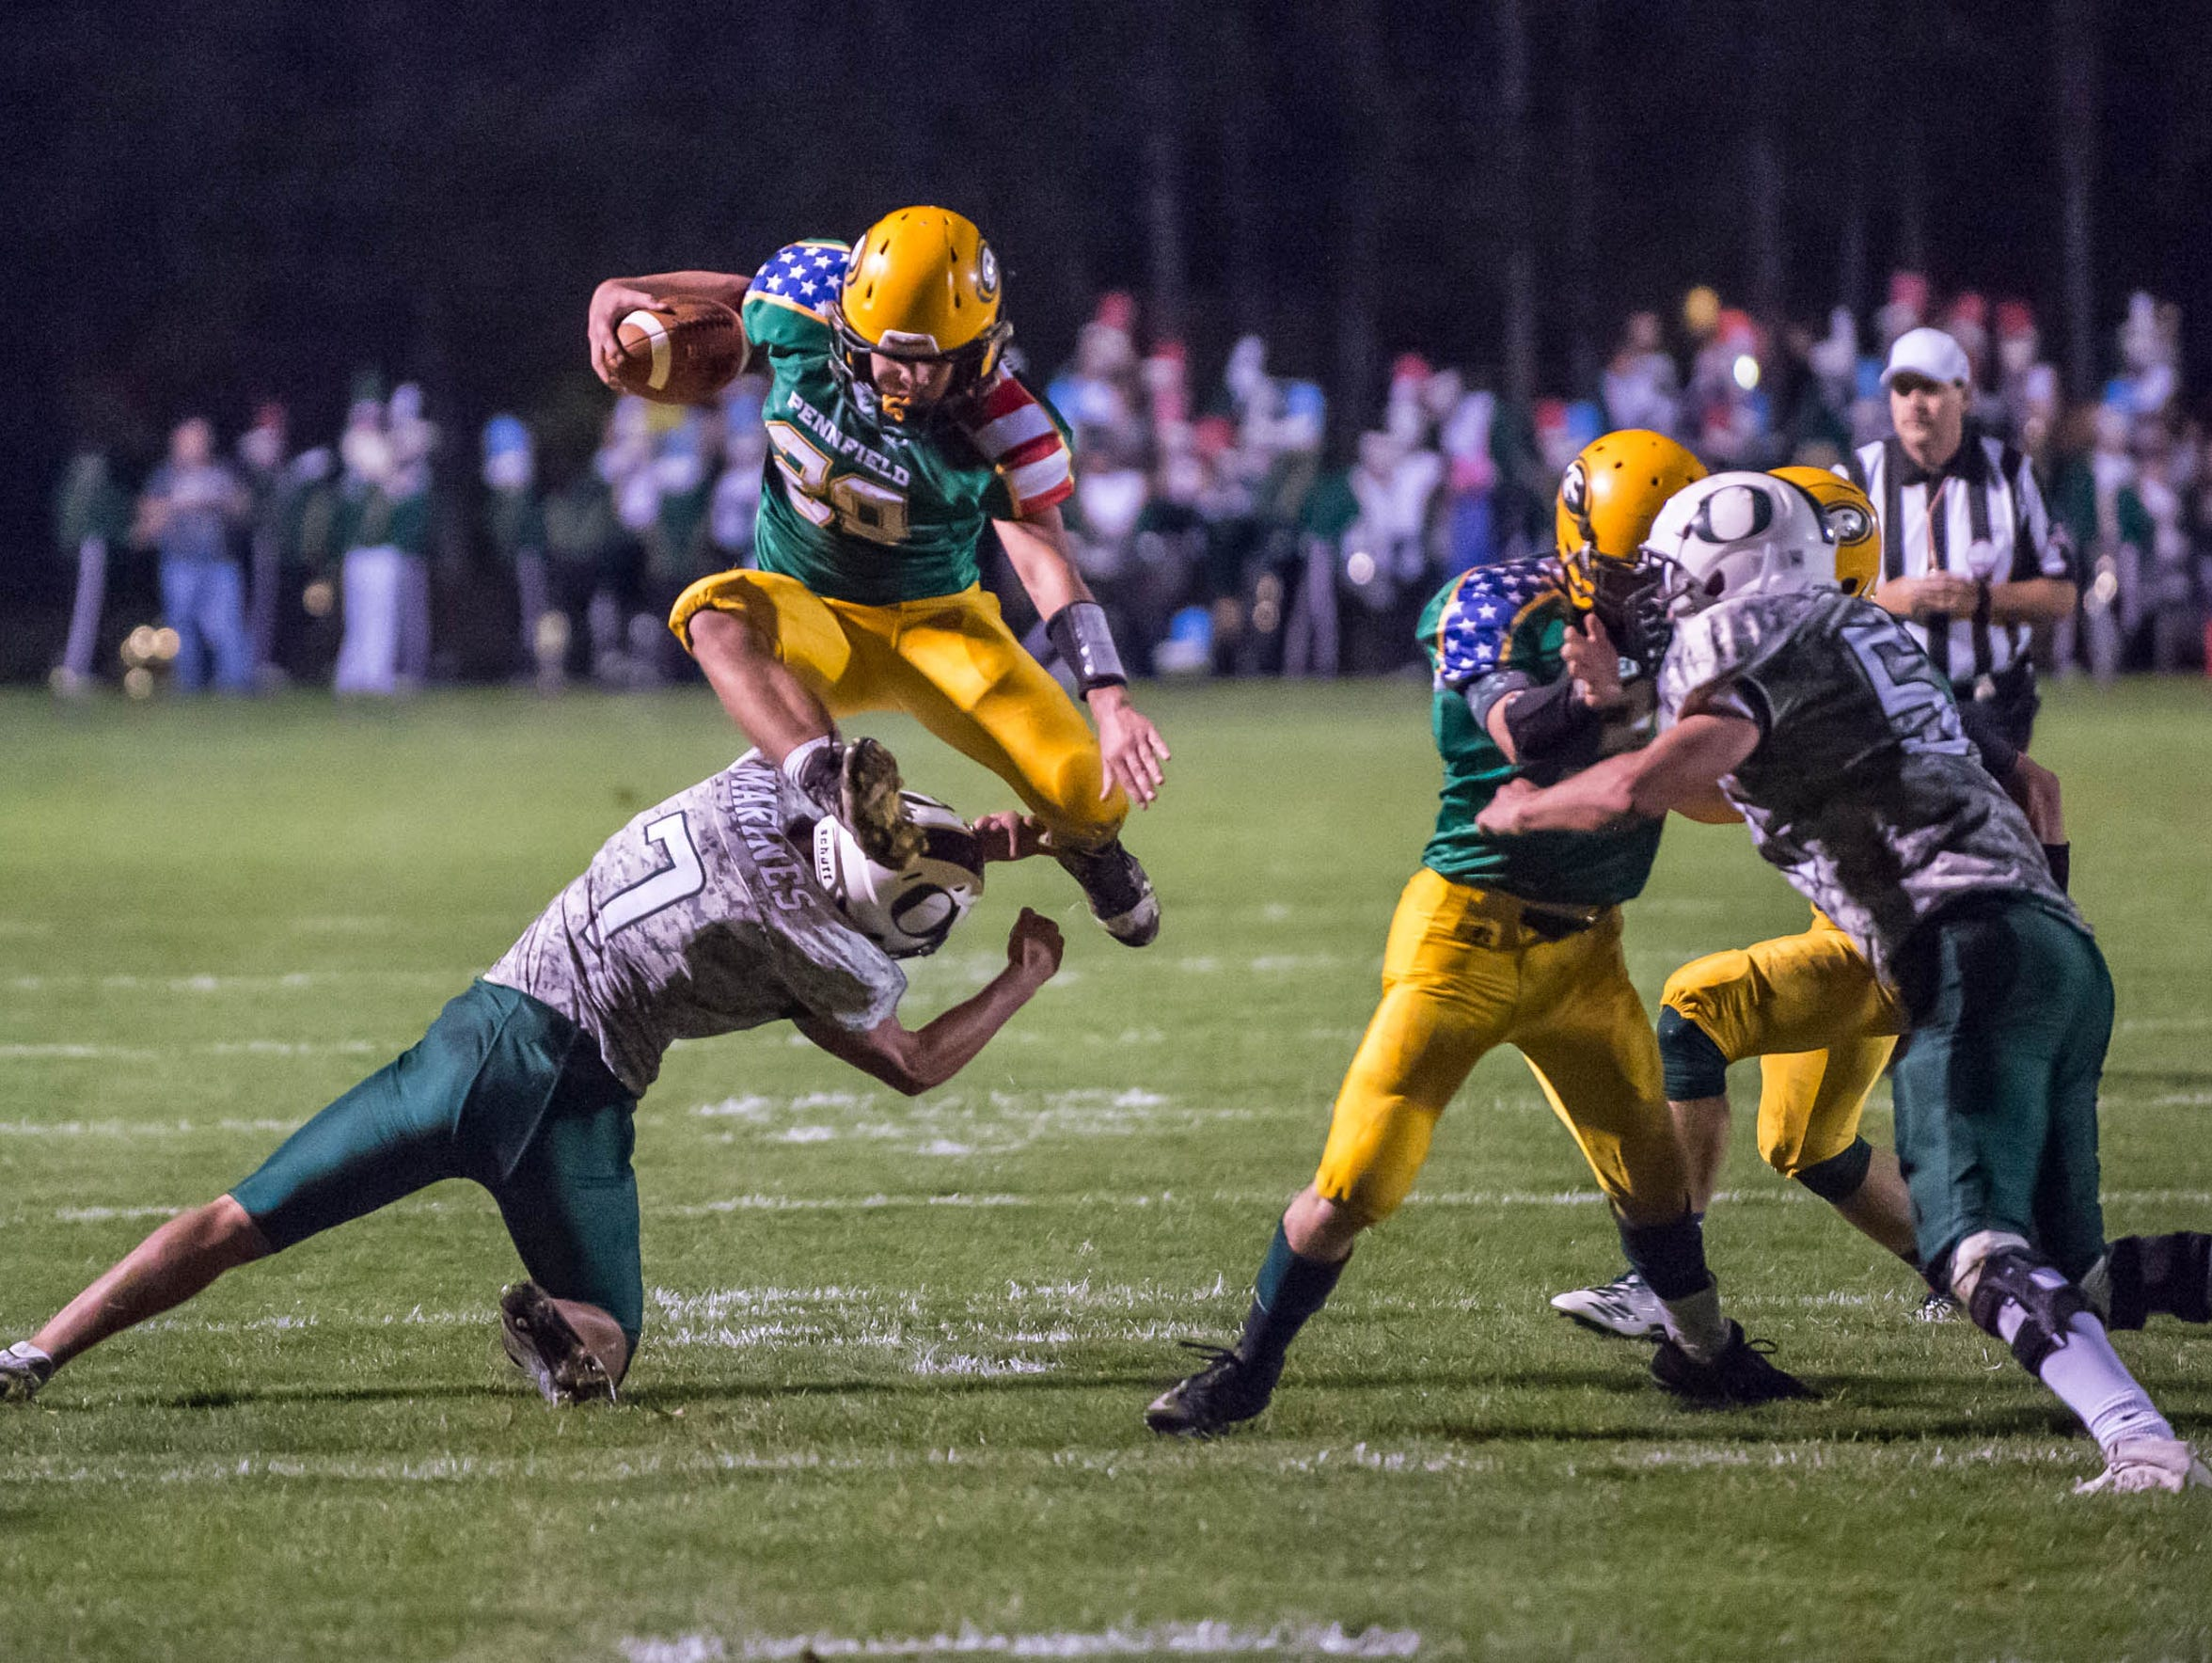 Pennfield's Sam Nichols leaps over the Olivet defender during last year's football season.